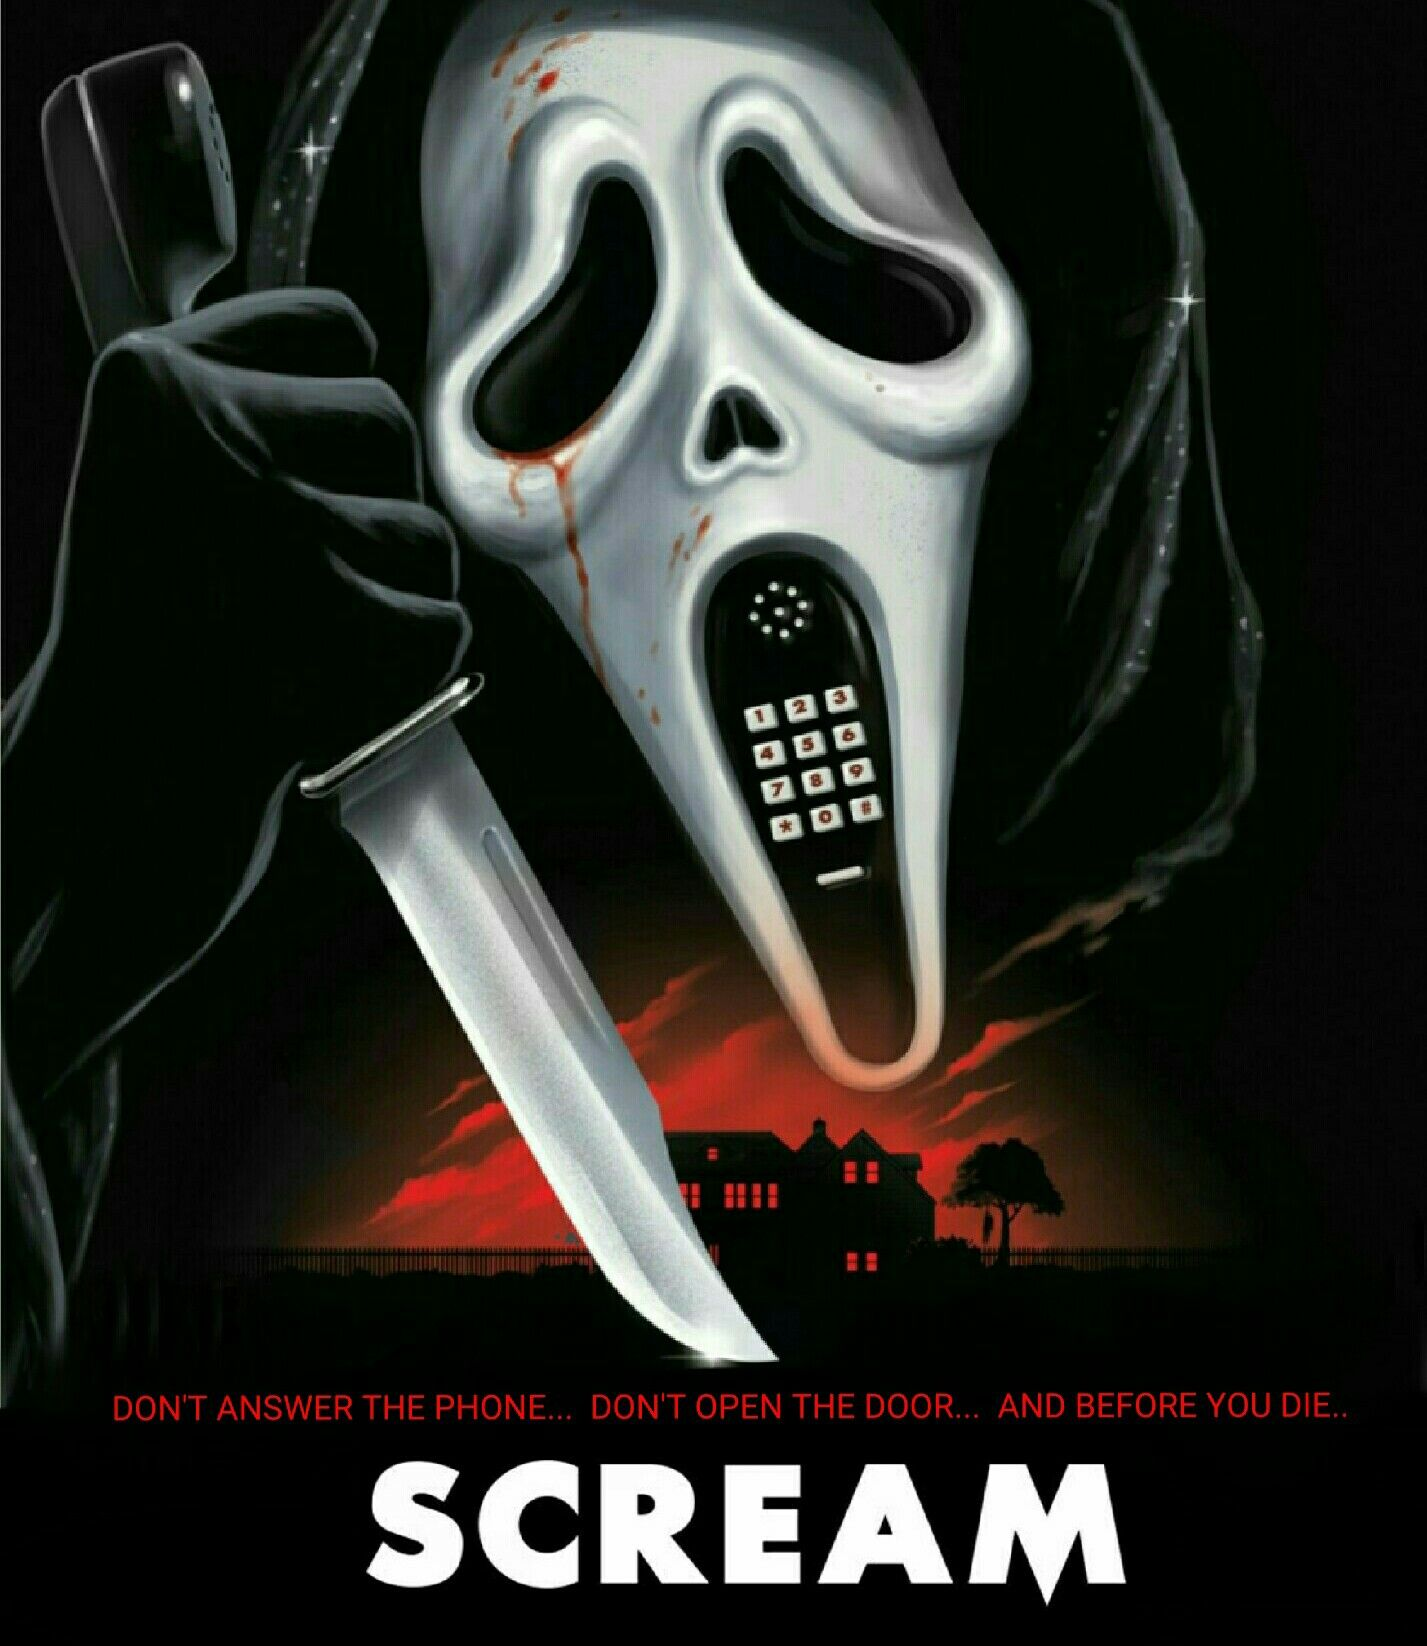 An analysis of the horror movie scream created by wes craven